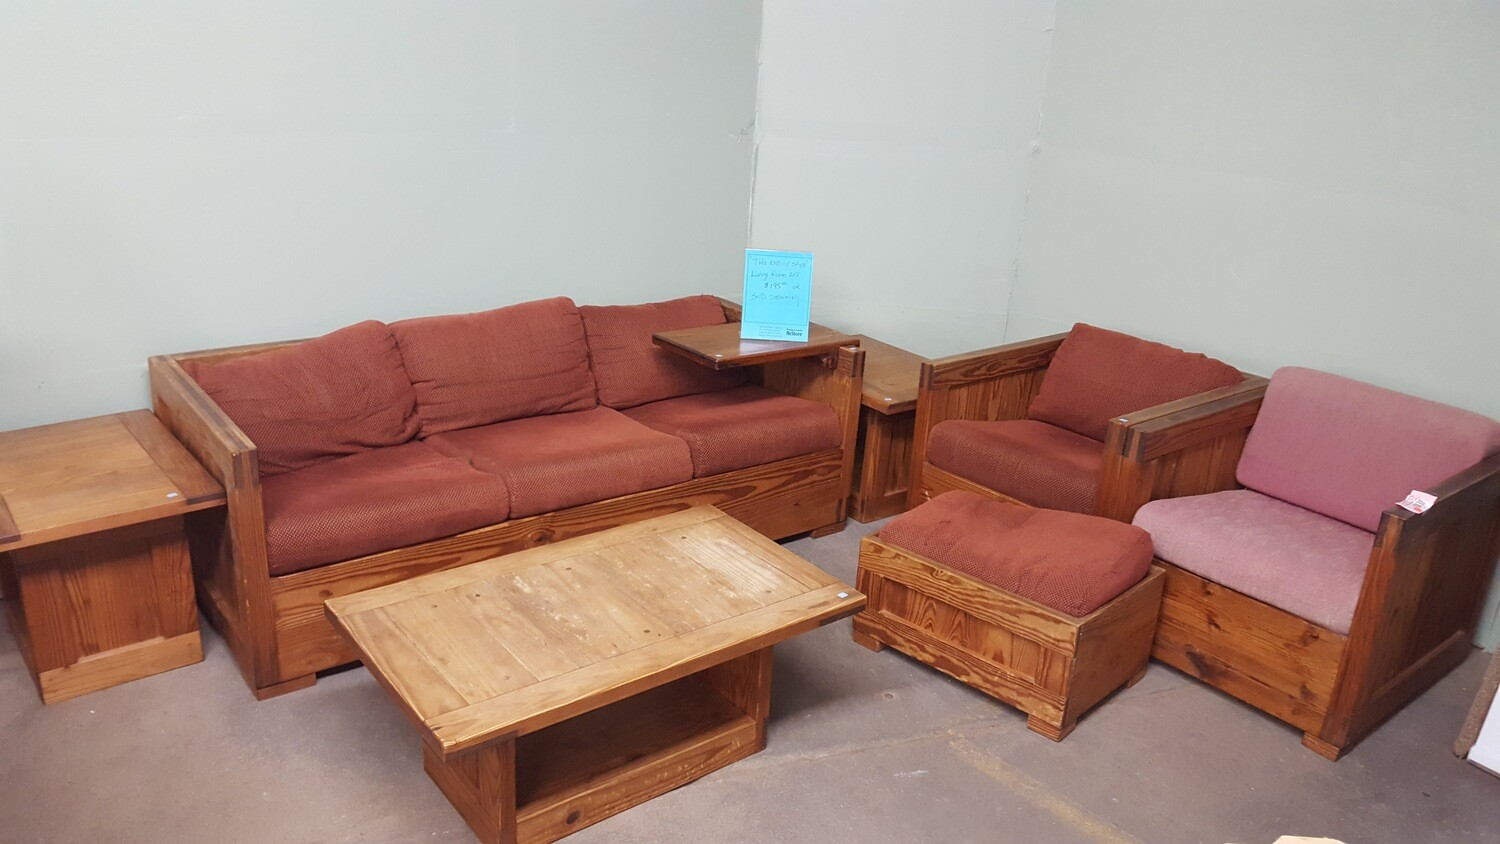 This End Up Living Room set